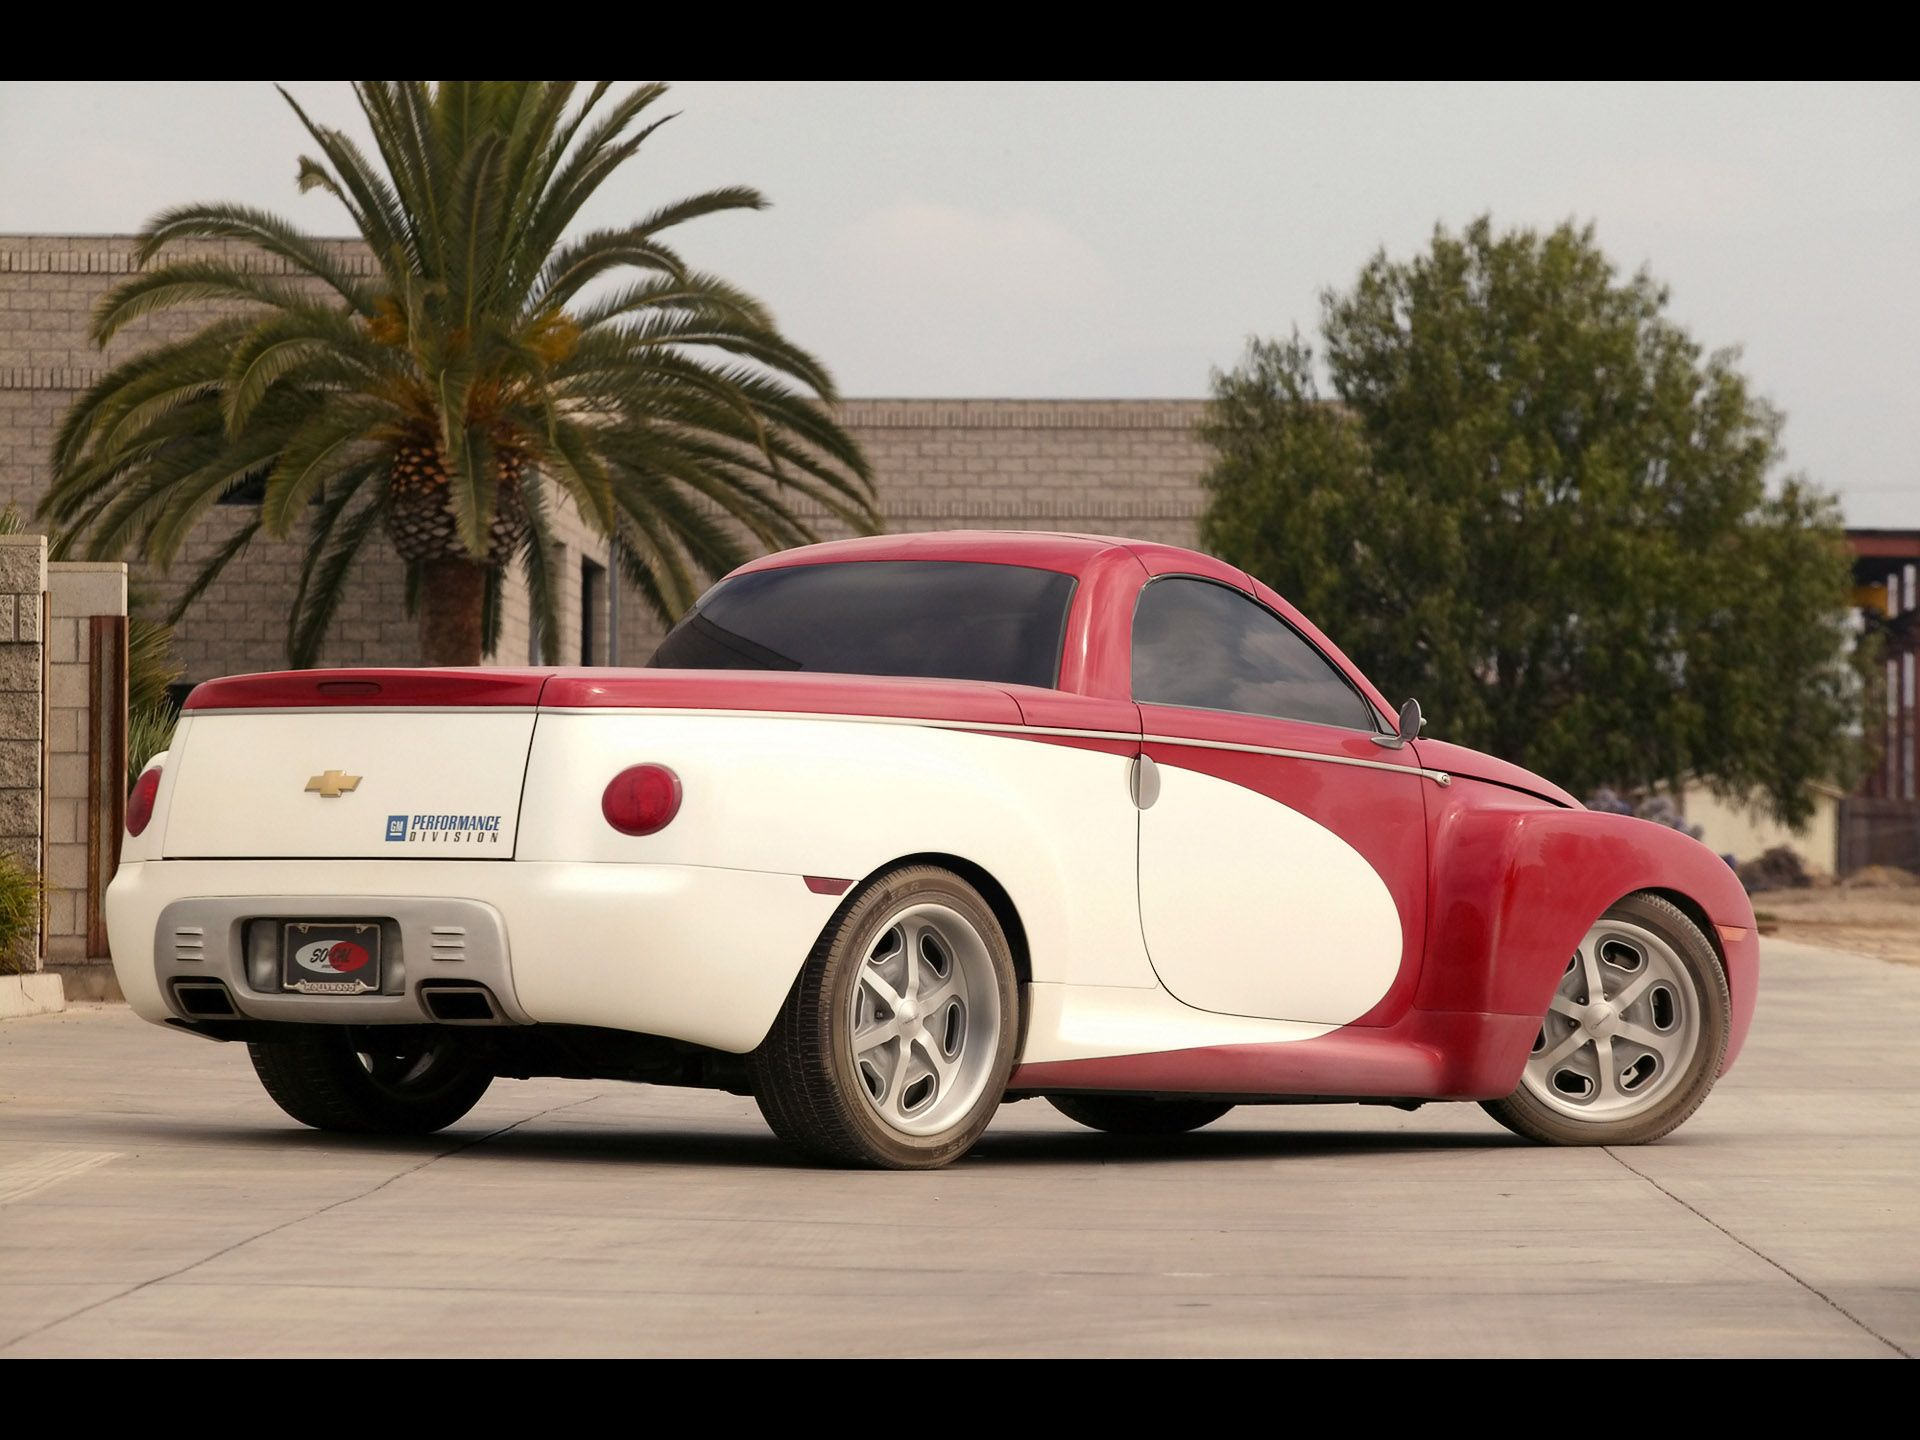 Chevrolet Ssr Review And Photos Chevrolet Ssr Chevrolet Chevy Ssr